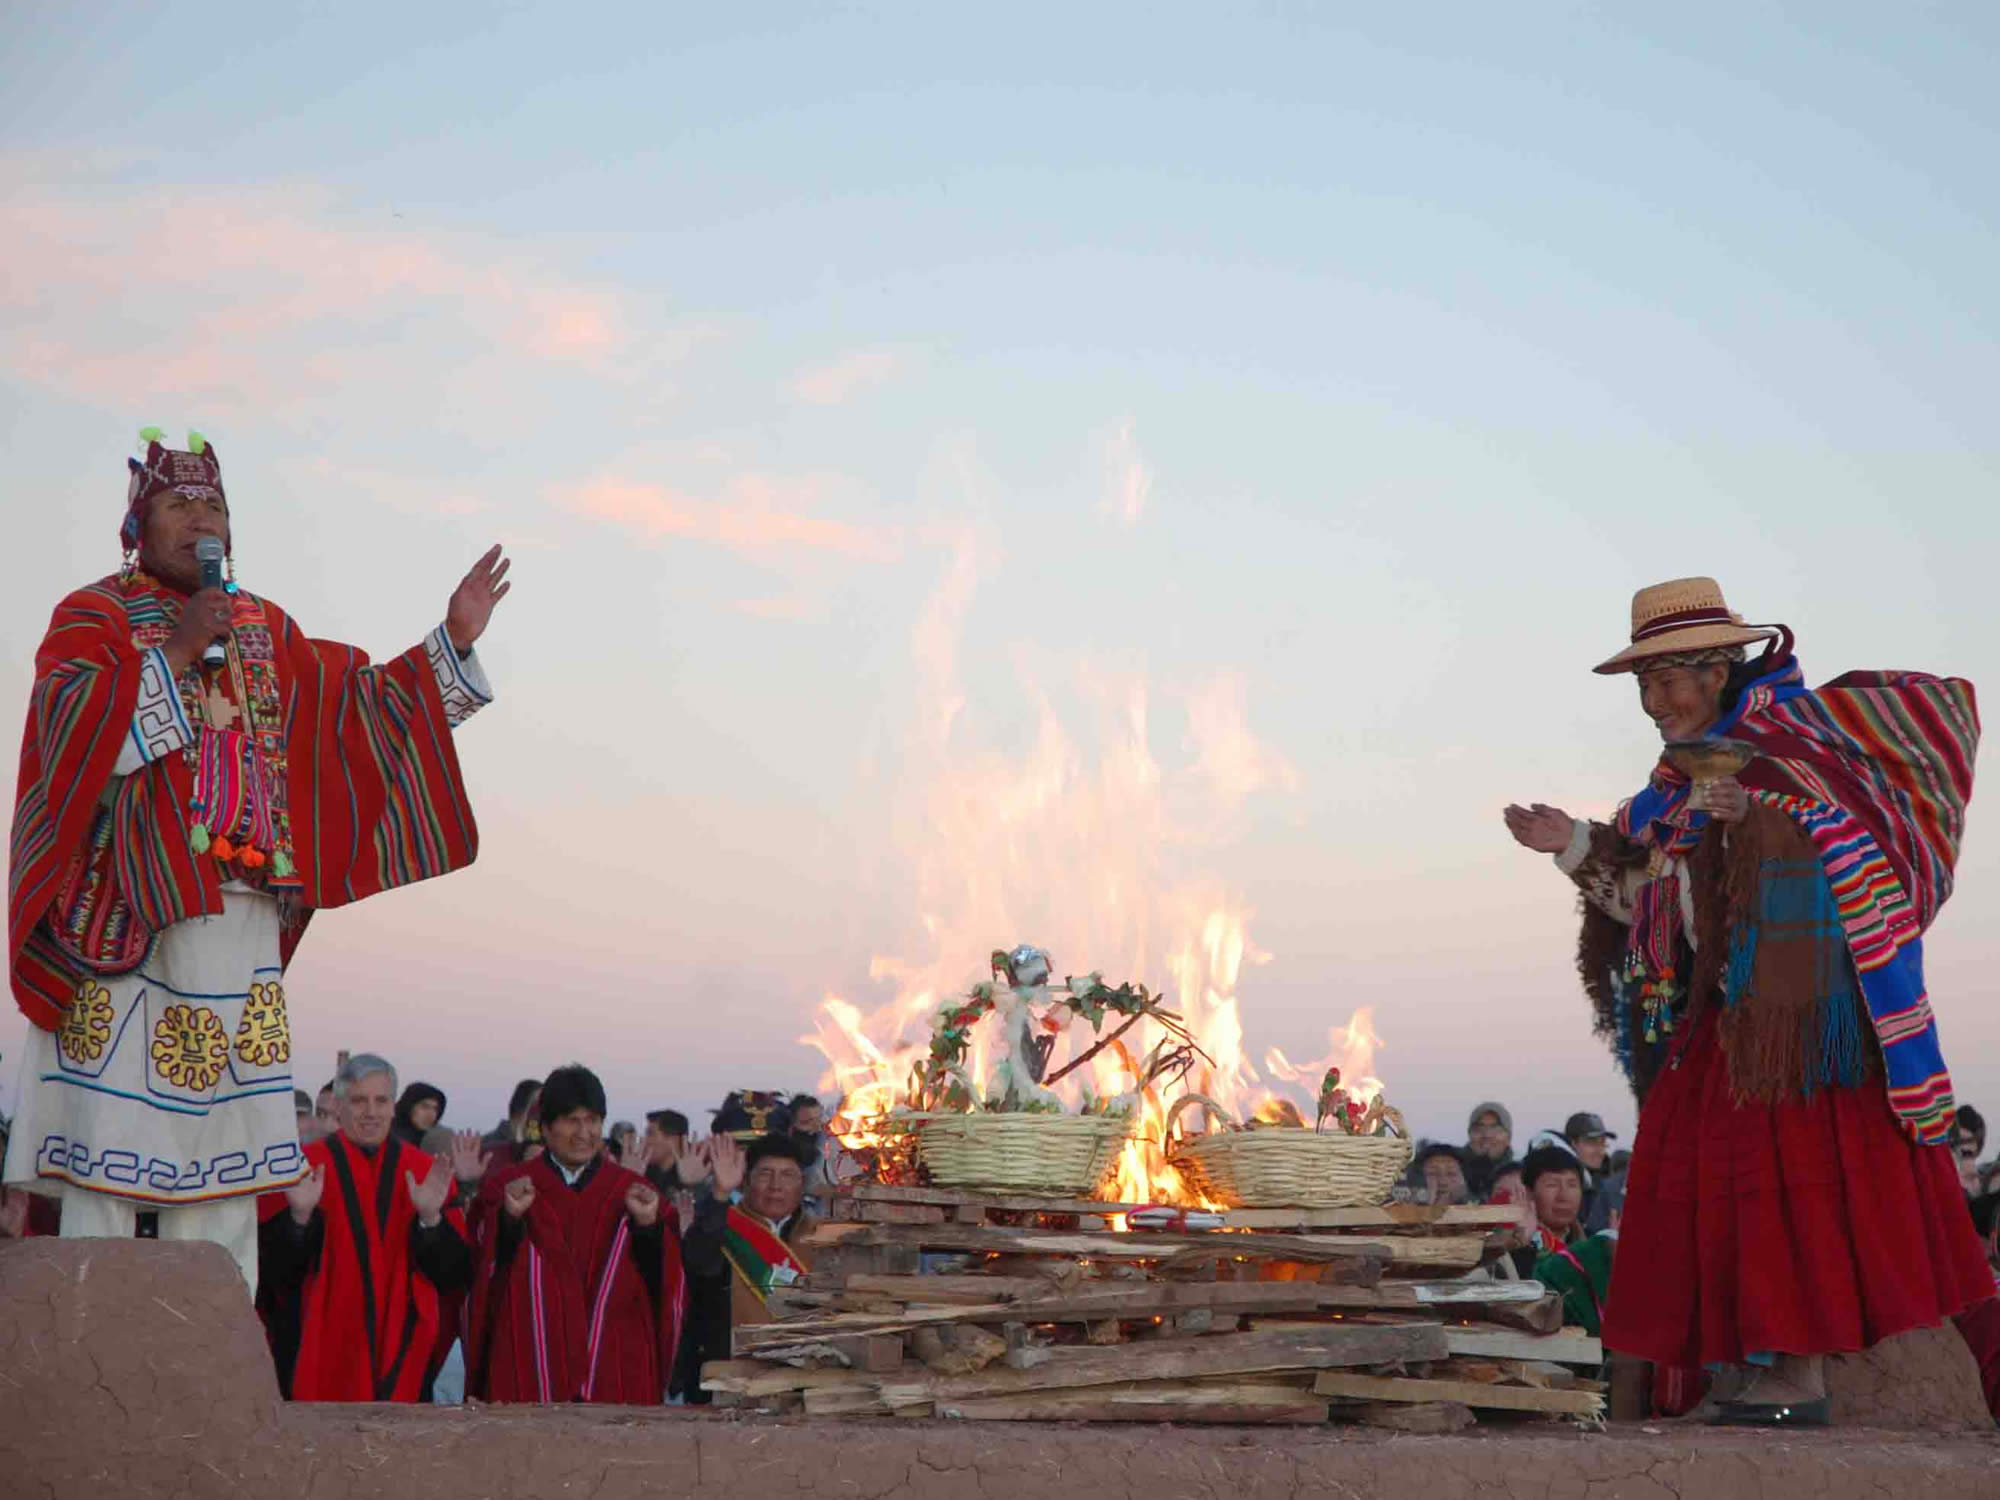 Winter Solstice - Willkakuti - Aymara New Year, Cultural Events